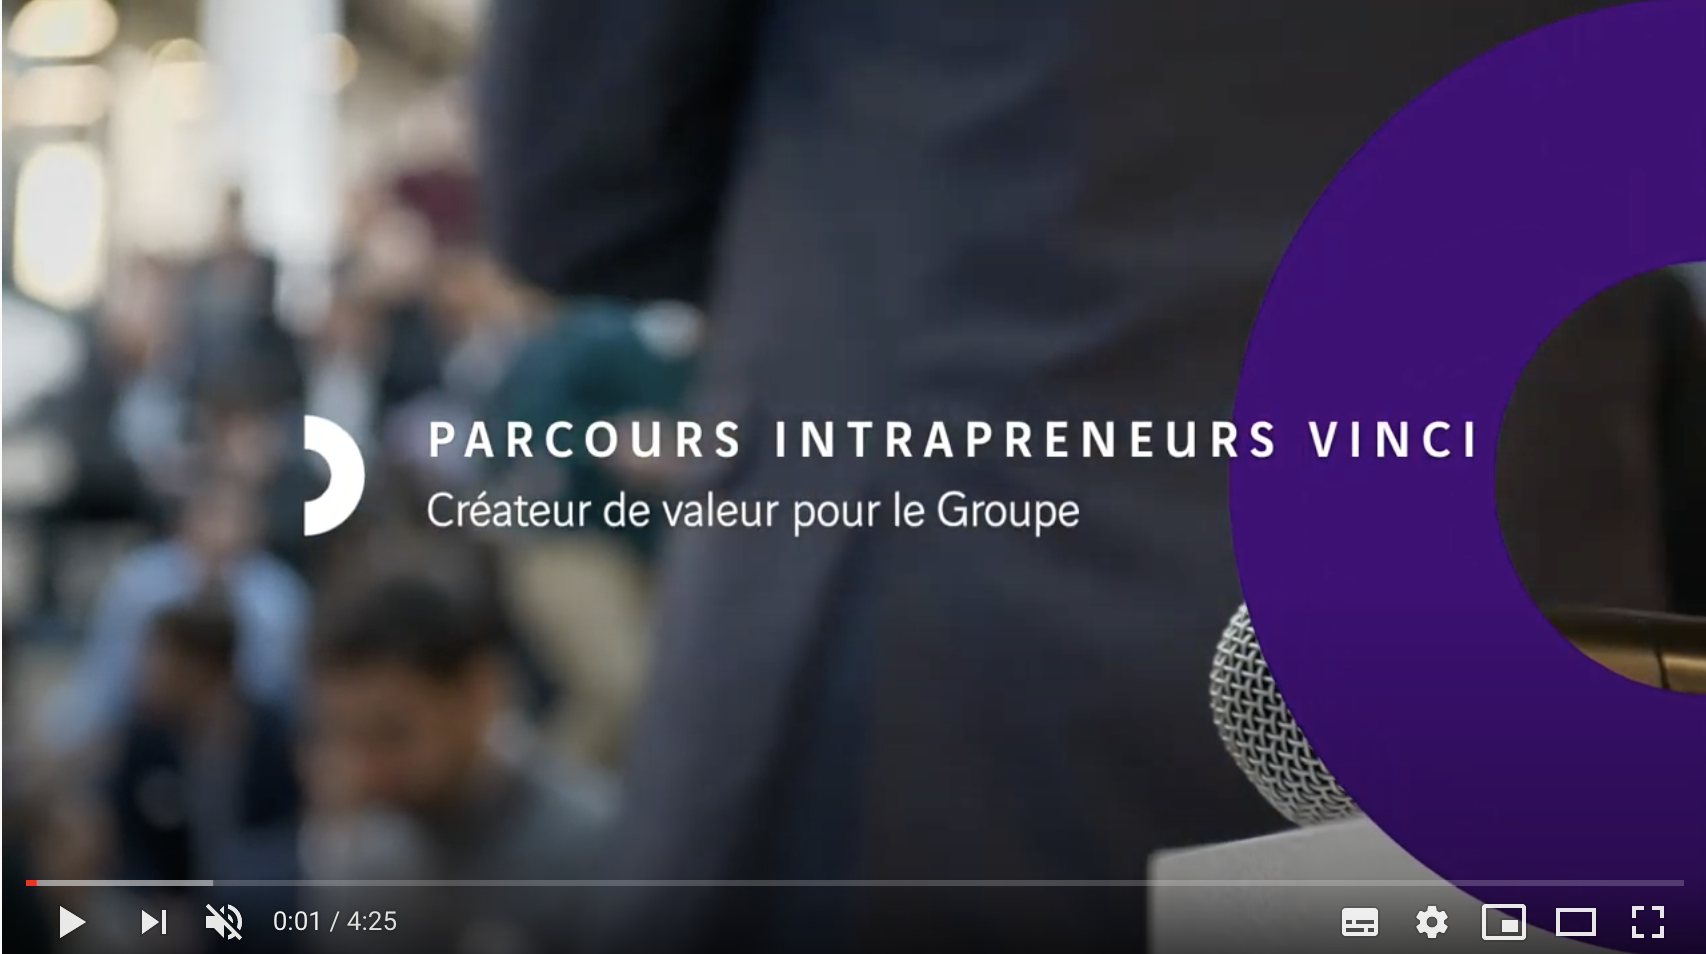 Intrapreneurs program: creating value for the Group